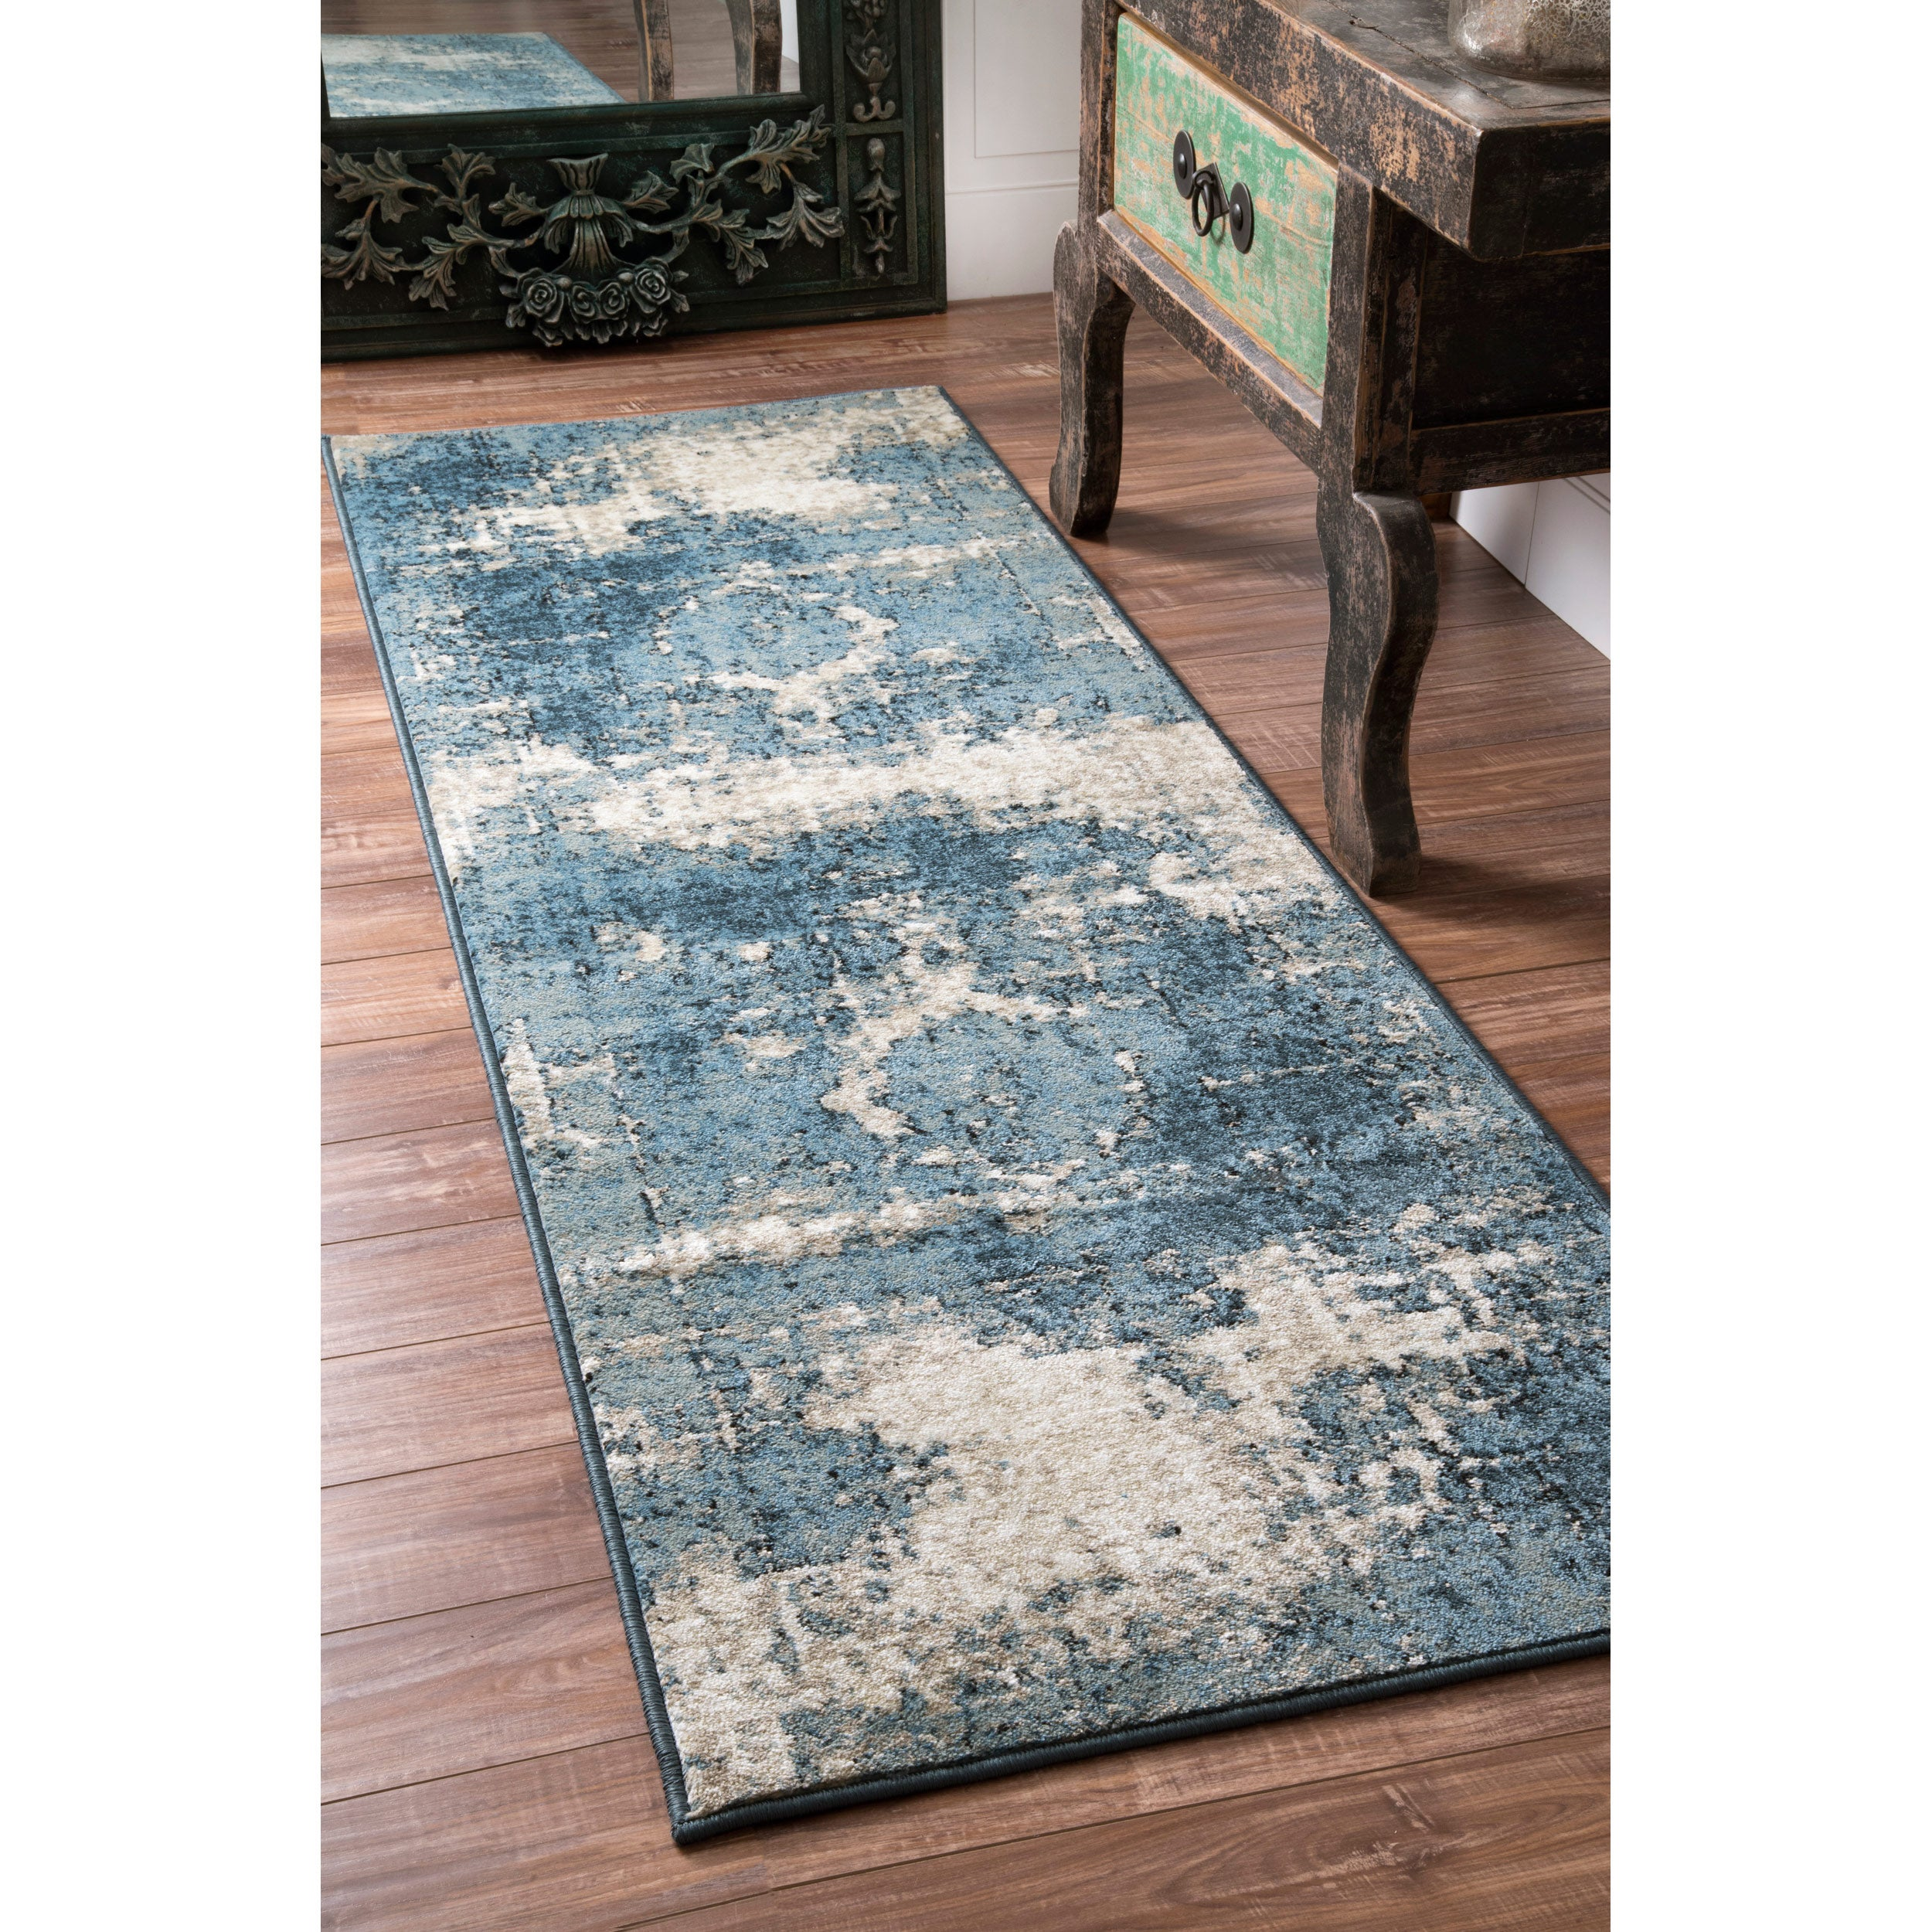 Buy 3\' x 8\' Runner Rugs Online at Overstock.com   Our Best Area Rugs ...